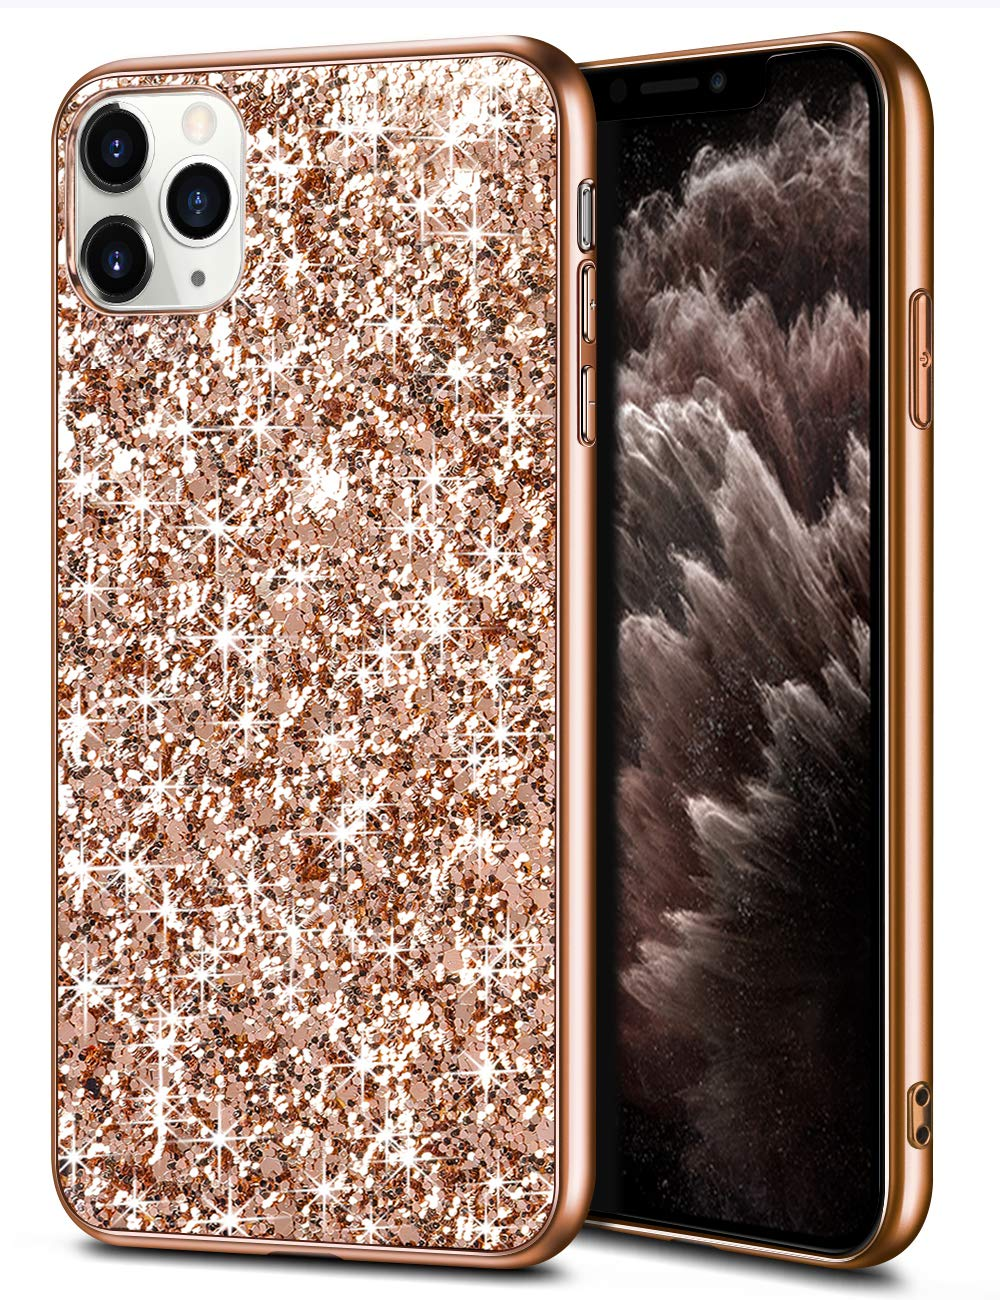 WOLLONY iPhone 11 Pro Max Case Glitter Sparkle Bling Shiny Cover for Girl Ultra Slim Durable Hybrid TPU Shockproof Bumper Hard Anti-Slip Back Protective Cover for iPhone 11 Pro Max 6.5inch Rose Gold